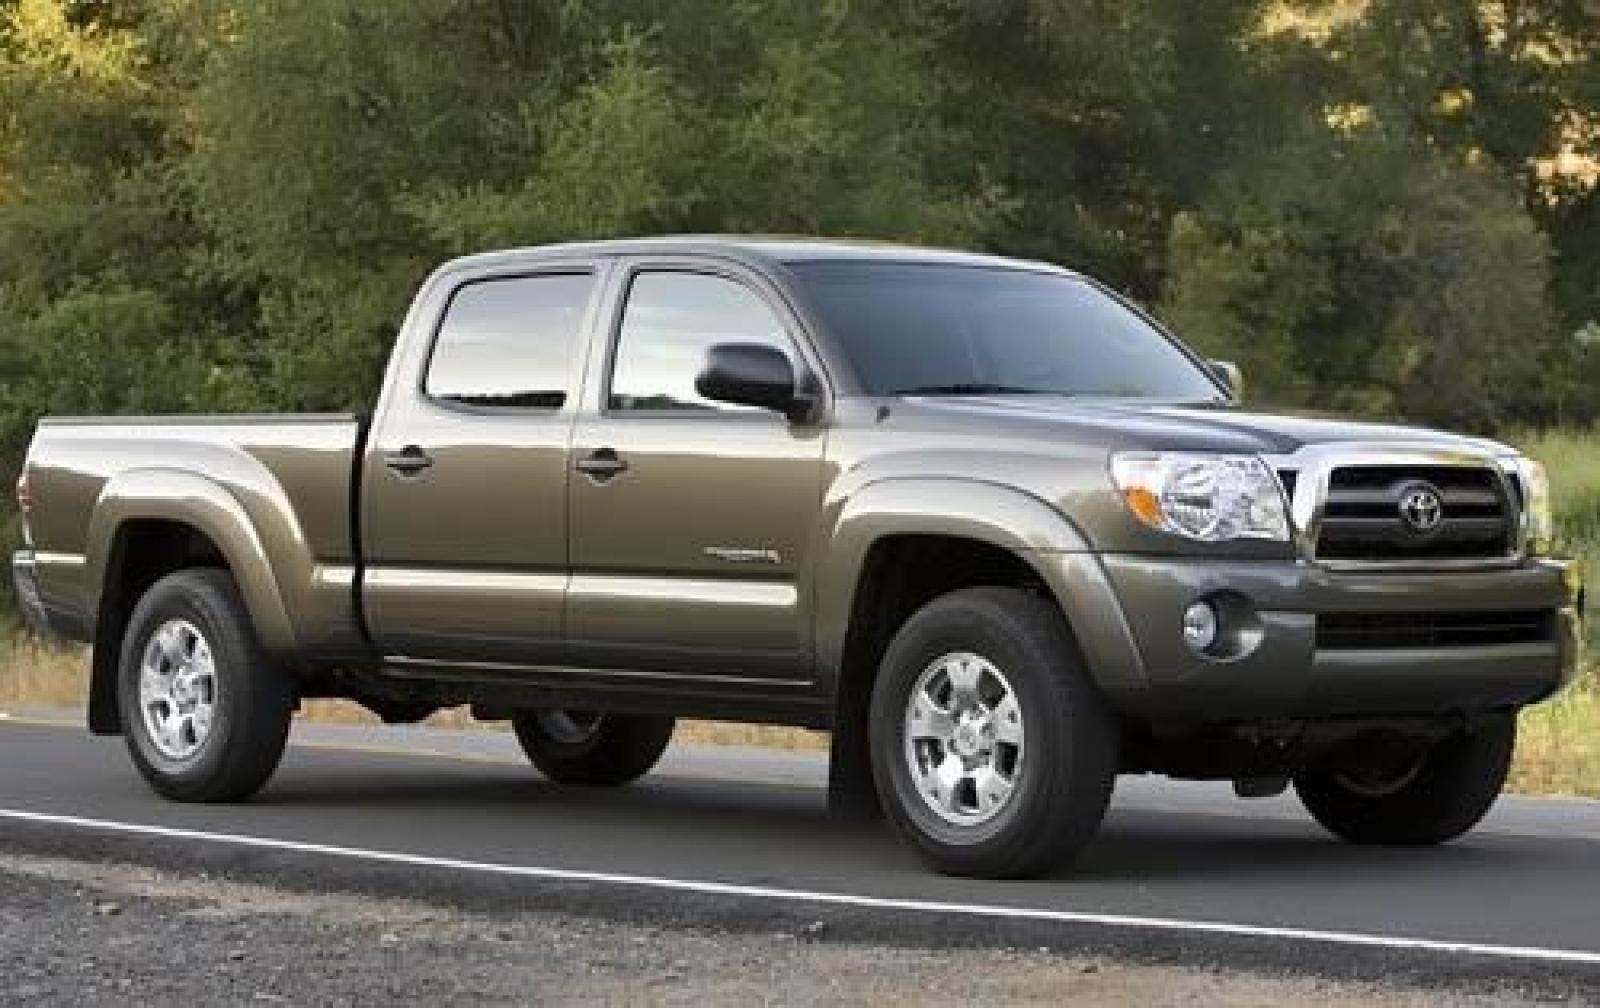 2011 toyota tacoma information and photos zombiedrive. Black Bedroom Furniture Sets. Home Design Ideas